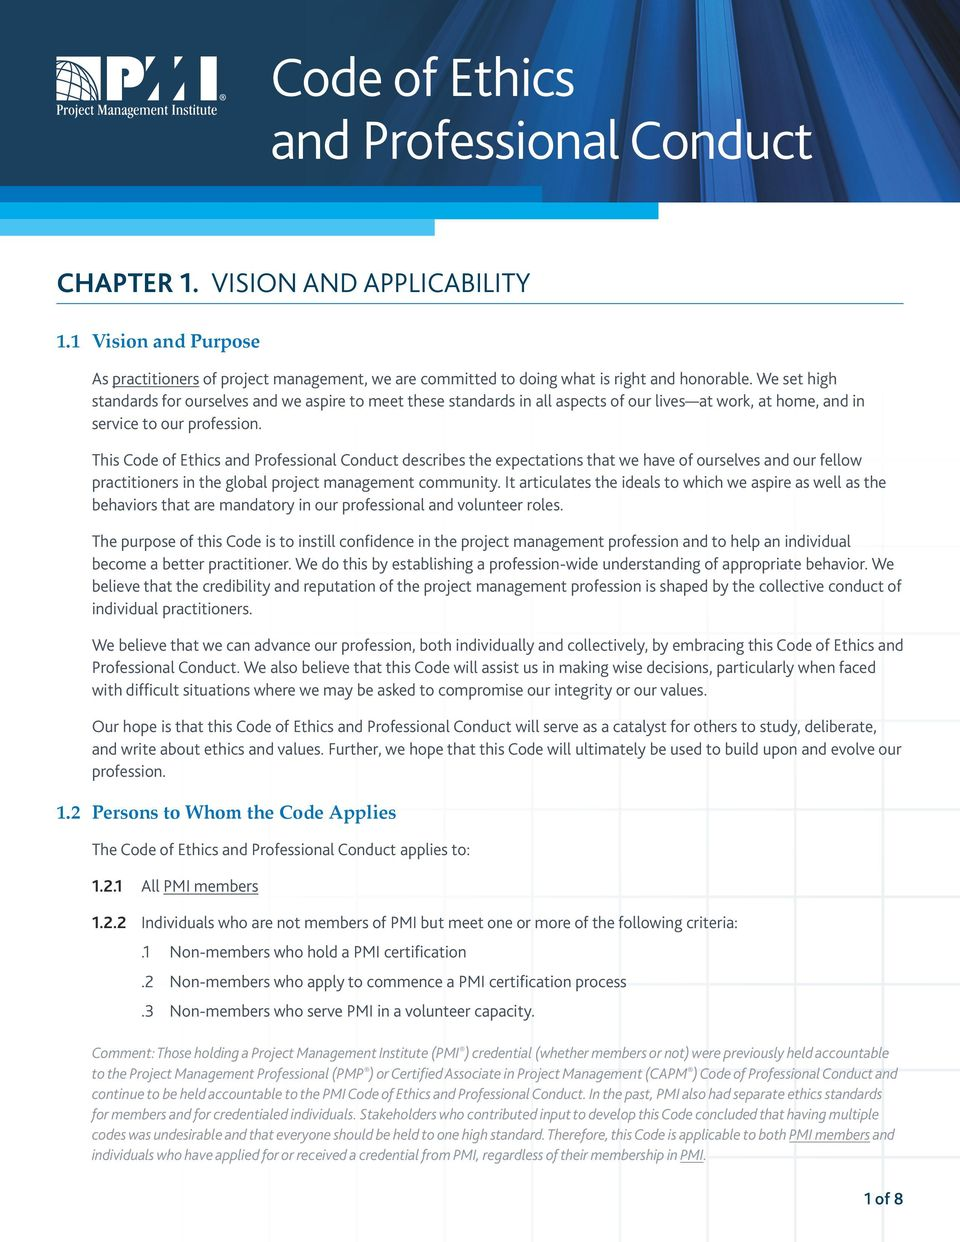 This Code of Ethics and Professional Conduct describes the expectations that we have of ourselves and our fellow practitioners in the global project management community.